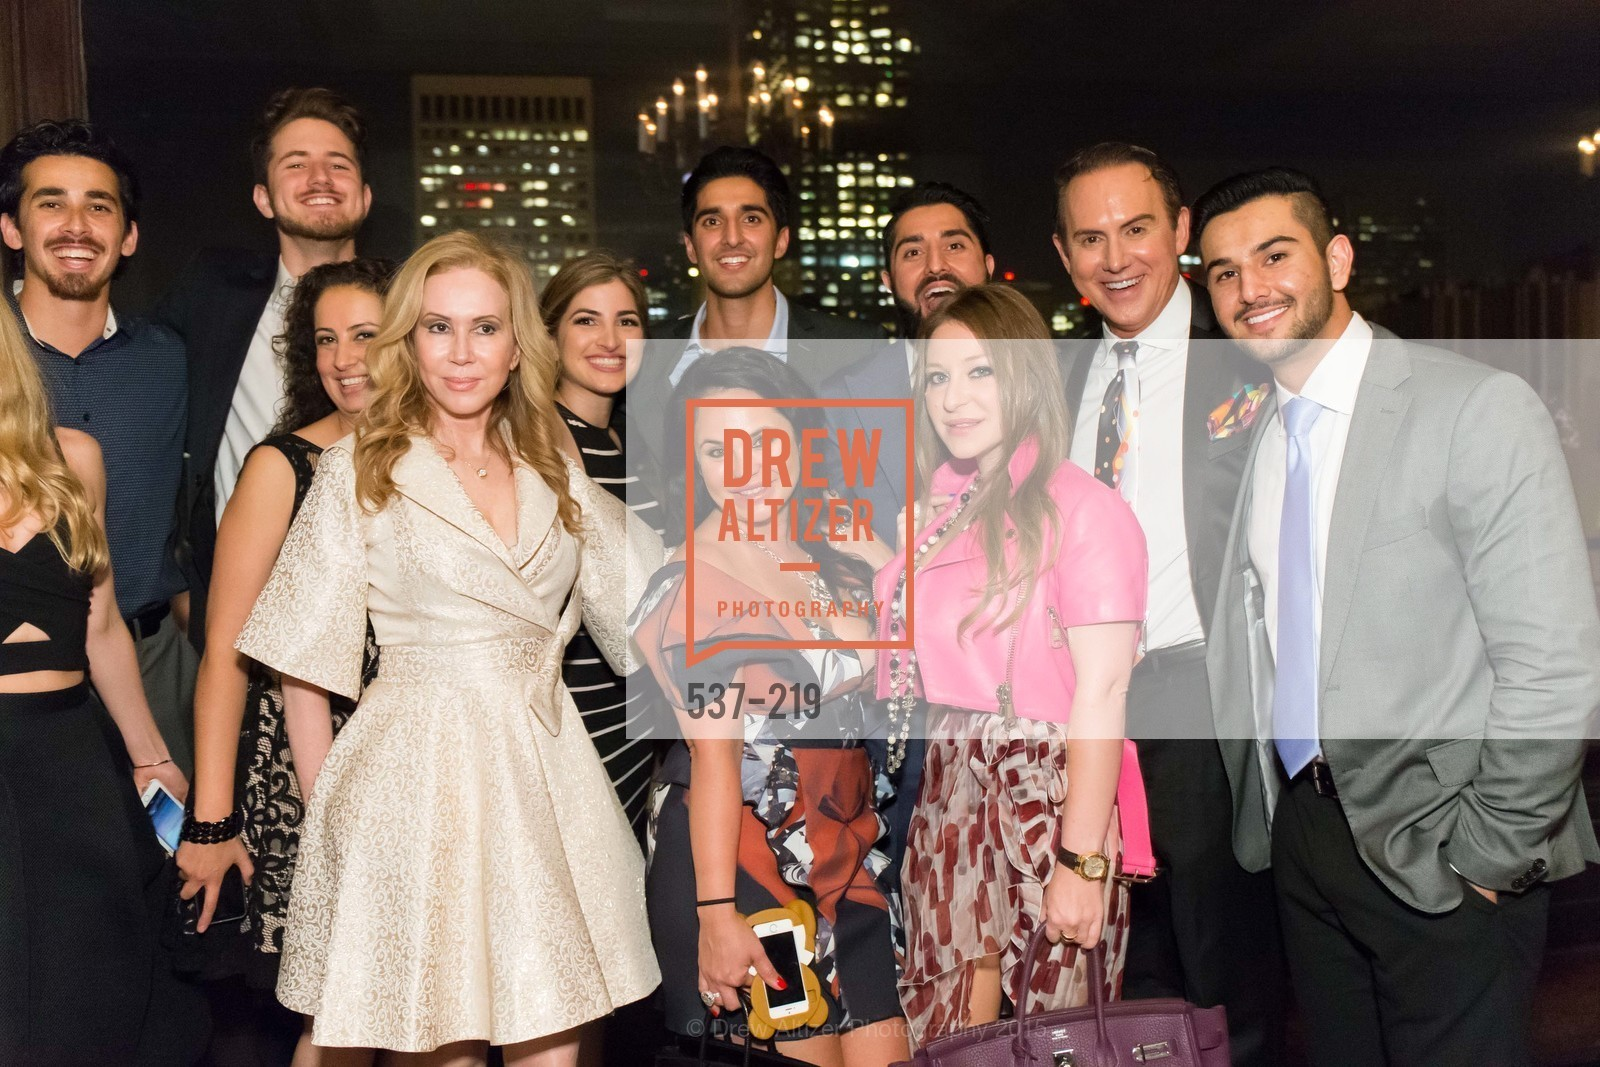 Chaundra Woods, Svetlana Jilenko, Omar Kohgadai, Harris Habibi, Fatima Lavour, Shugufa Habibi, Sophie Azouaou, Ramin Habibi, Roh Habibi, Joel Goodrich, Obeid Habibi, Champagne Reception & Screening of Million Dollar Listing San Francisco, University Club. 800 Powell St, August 5th, 2015,Drew Altizer, Drew Altizer Photography, full-service agency, private events, San Francisco photographer, photographer california